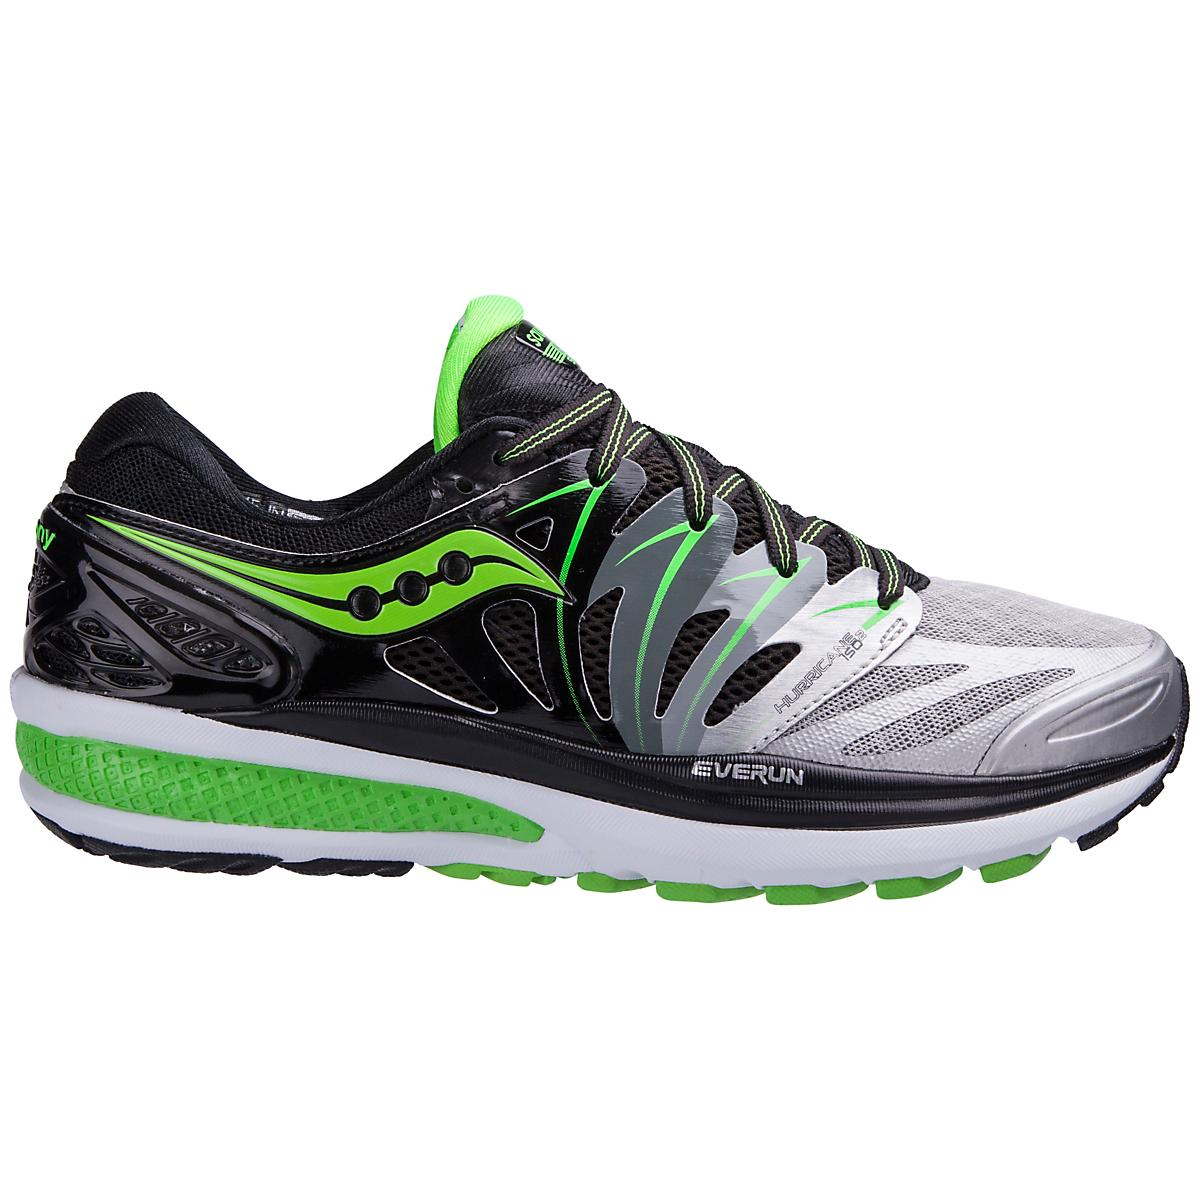 e7eb2df1d50b Mens Saucony Hurricane ISO 2 Running Shoe at Road Runner Sports